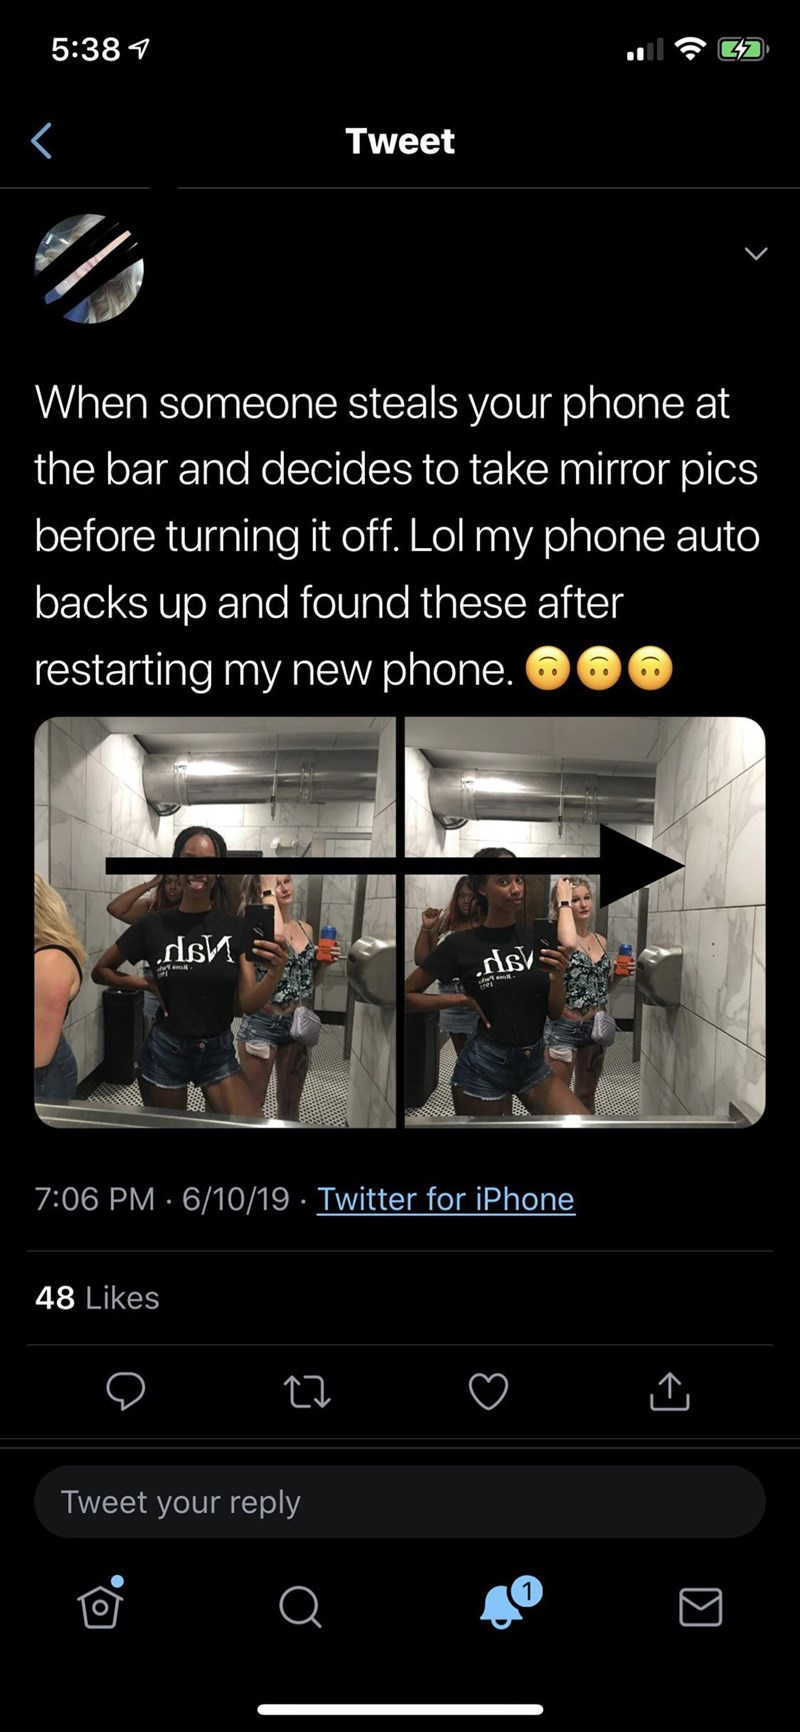 trashy - Screenshot - 5:38 Tweet When someone steals your phone at the bar and decides to take mirror pics before turning it off. Lol my phone auto backs up and found these after restarting my new phone. 7:06 PM 6/10/19 Twitter for iPhone 48 Likes Tweet your reply Q 7 (. (.